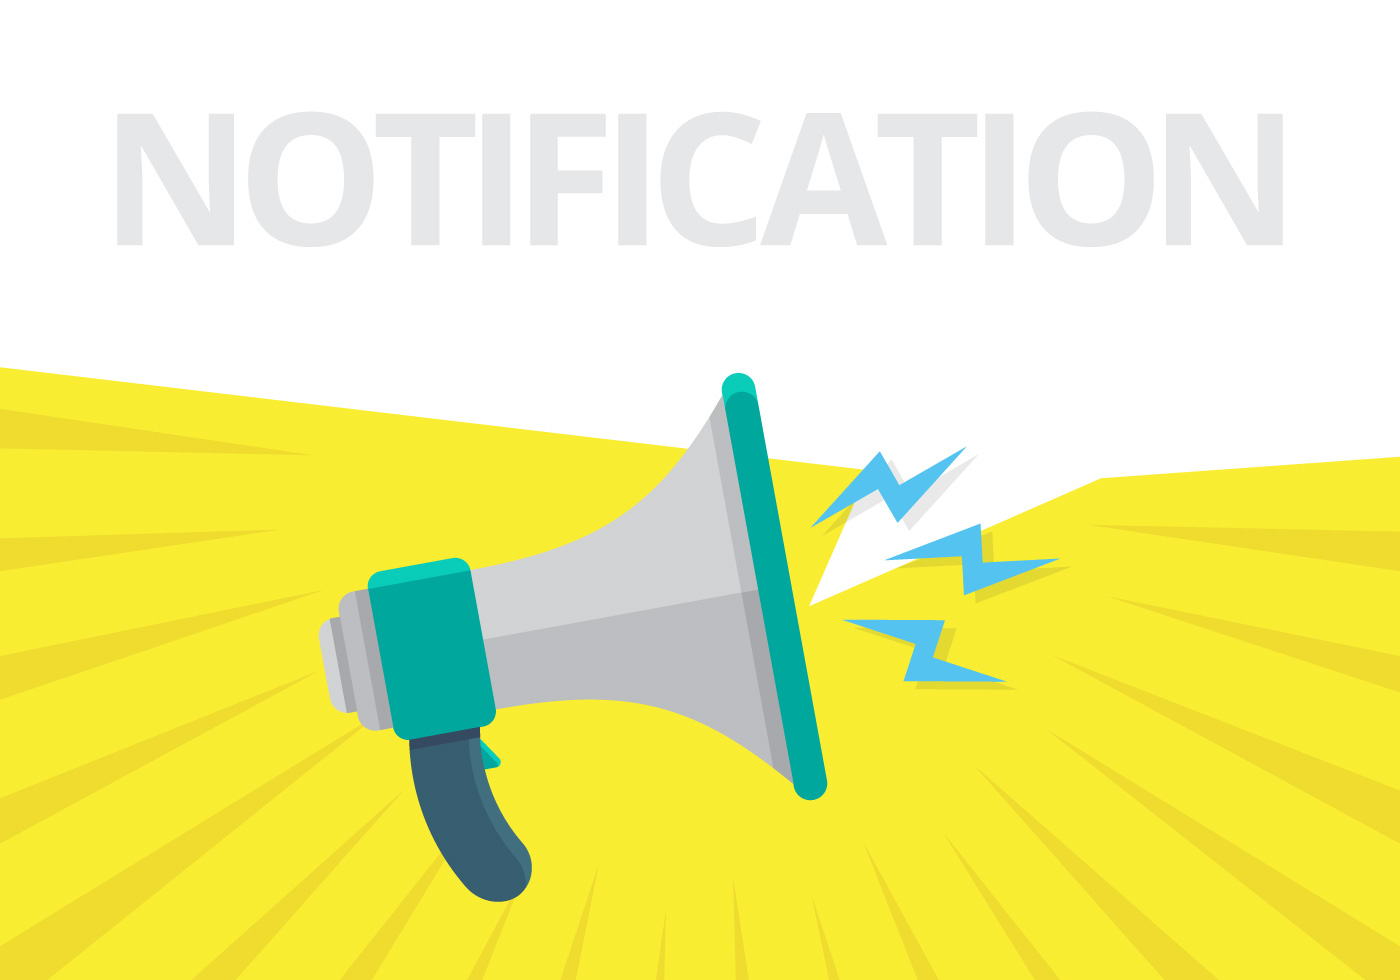 Notification Icon Free Vector Art - (32444 Free Downloads)